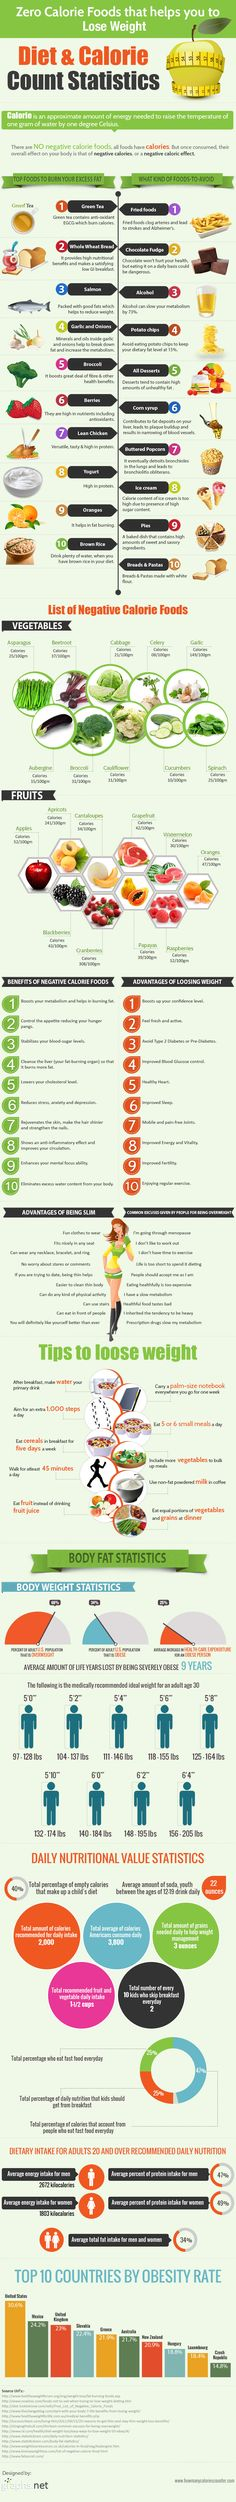 Zero Calorie Foods that help you lose weight! #calories #health #diet #nutrition #weightloss